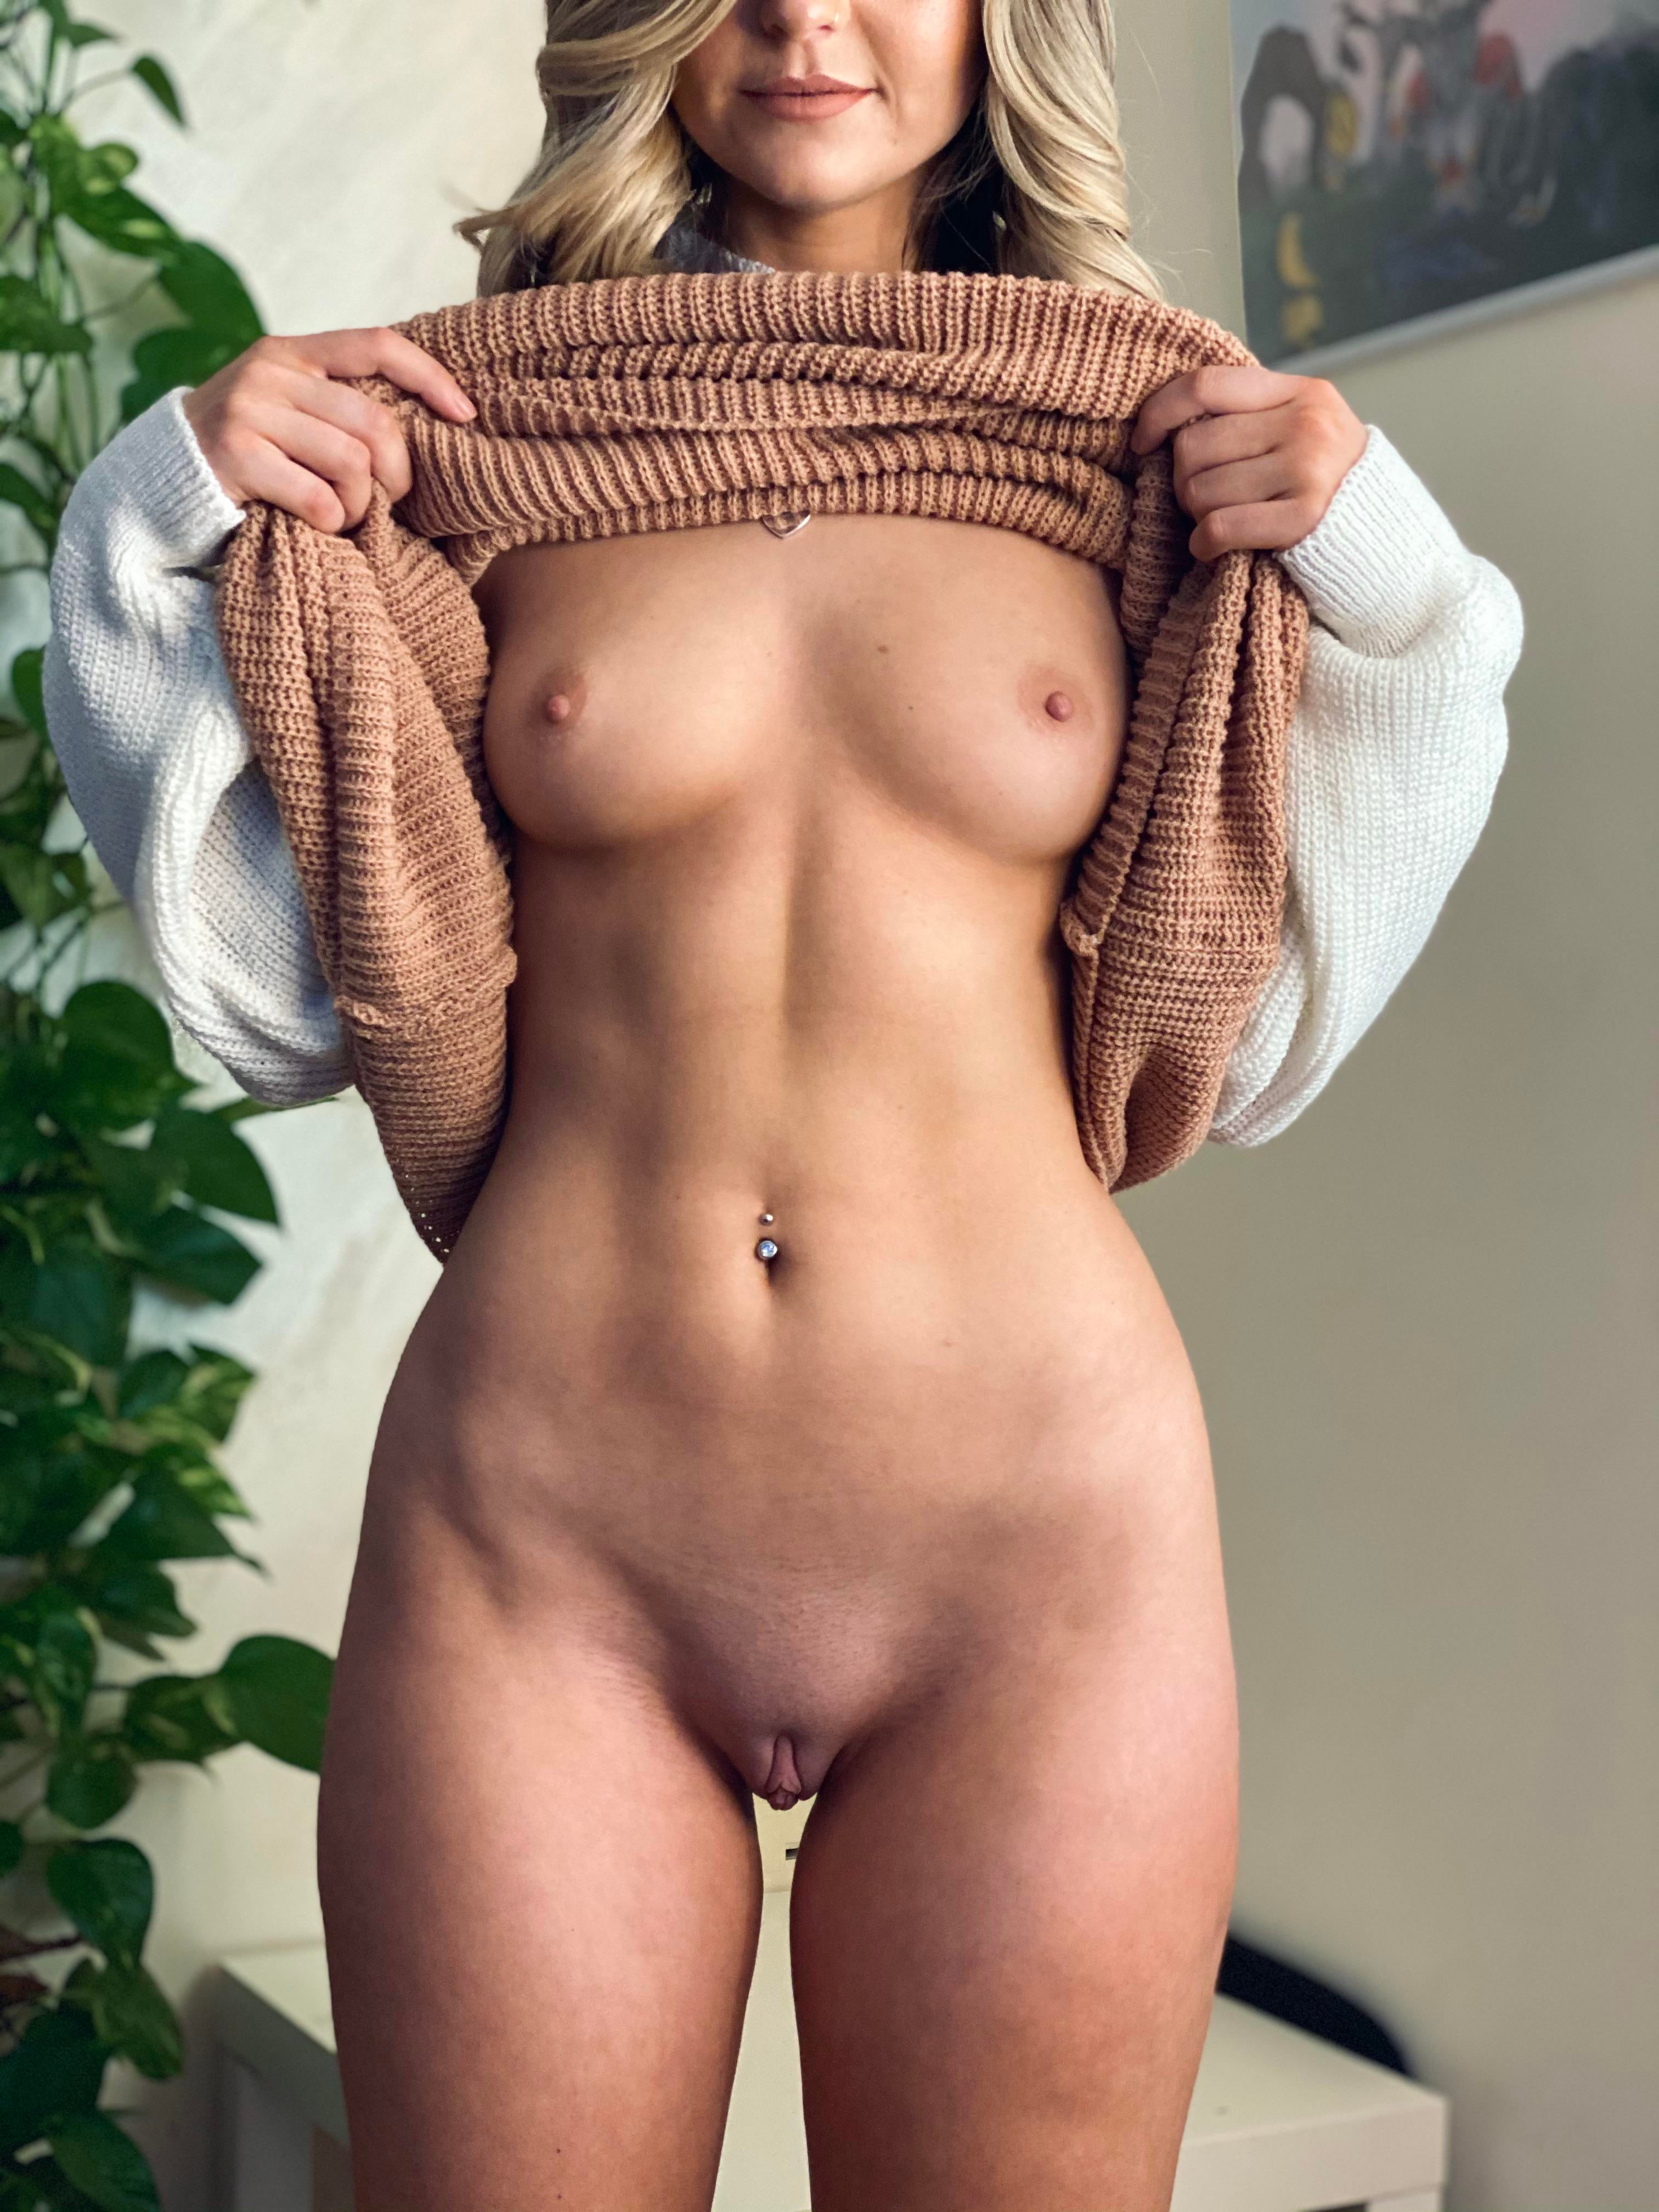 Great pussy